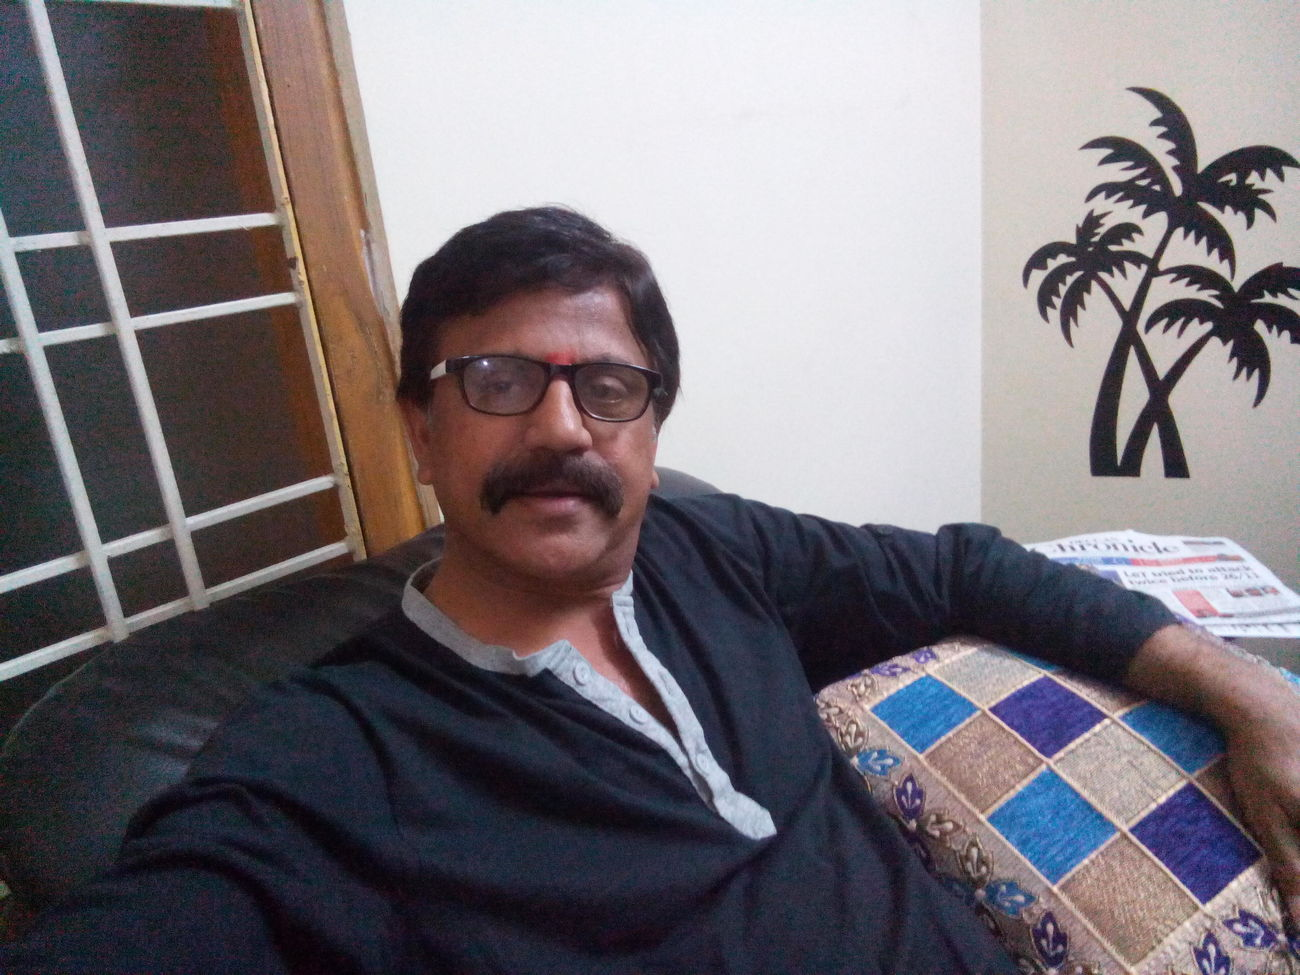 Hi! Everybody Self Portrait Color Portrait Selfie ♥ Taking Photos Relaxing At Home Sweet Home Happy Always Have A Nice Day♥ Happy Wednesday !!! Be Blessed To All Beautiful Friends From India With Love...